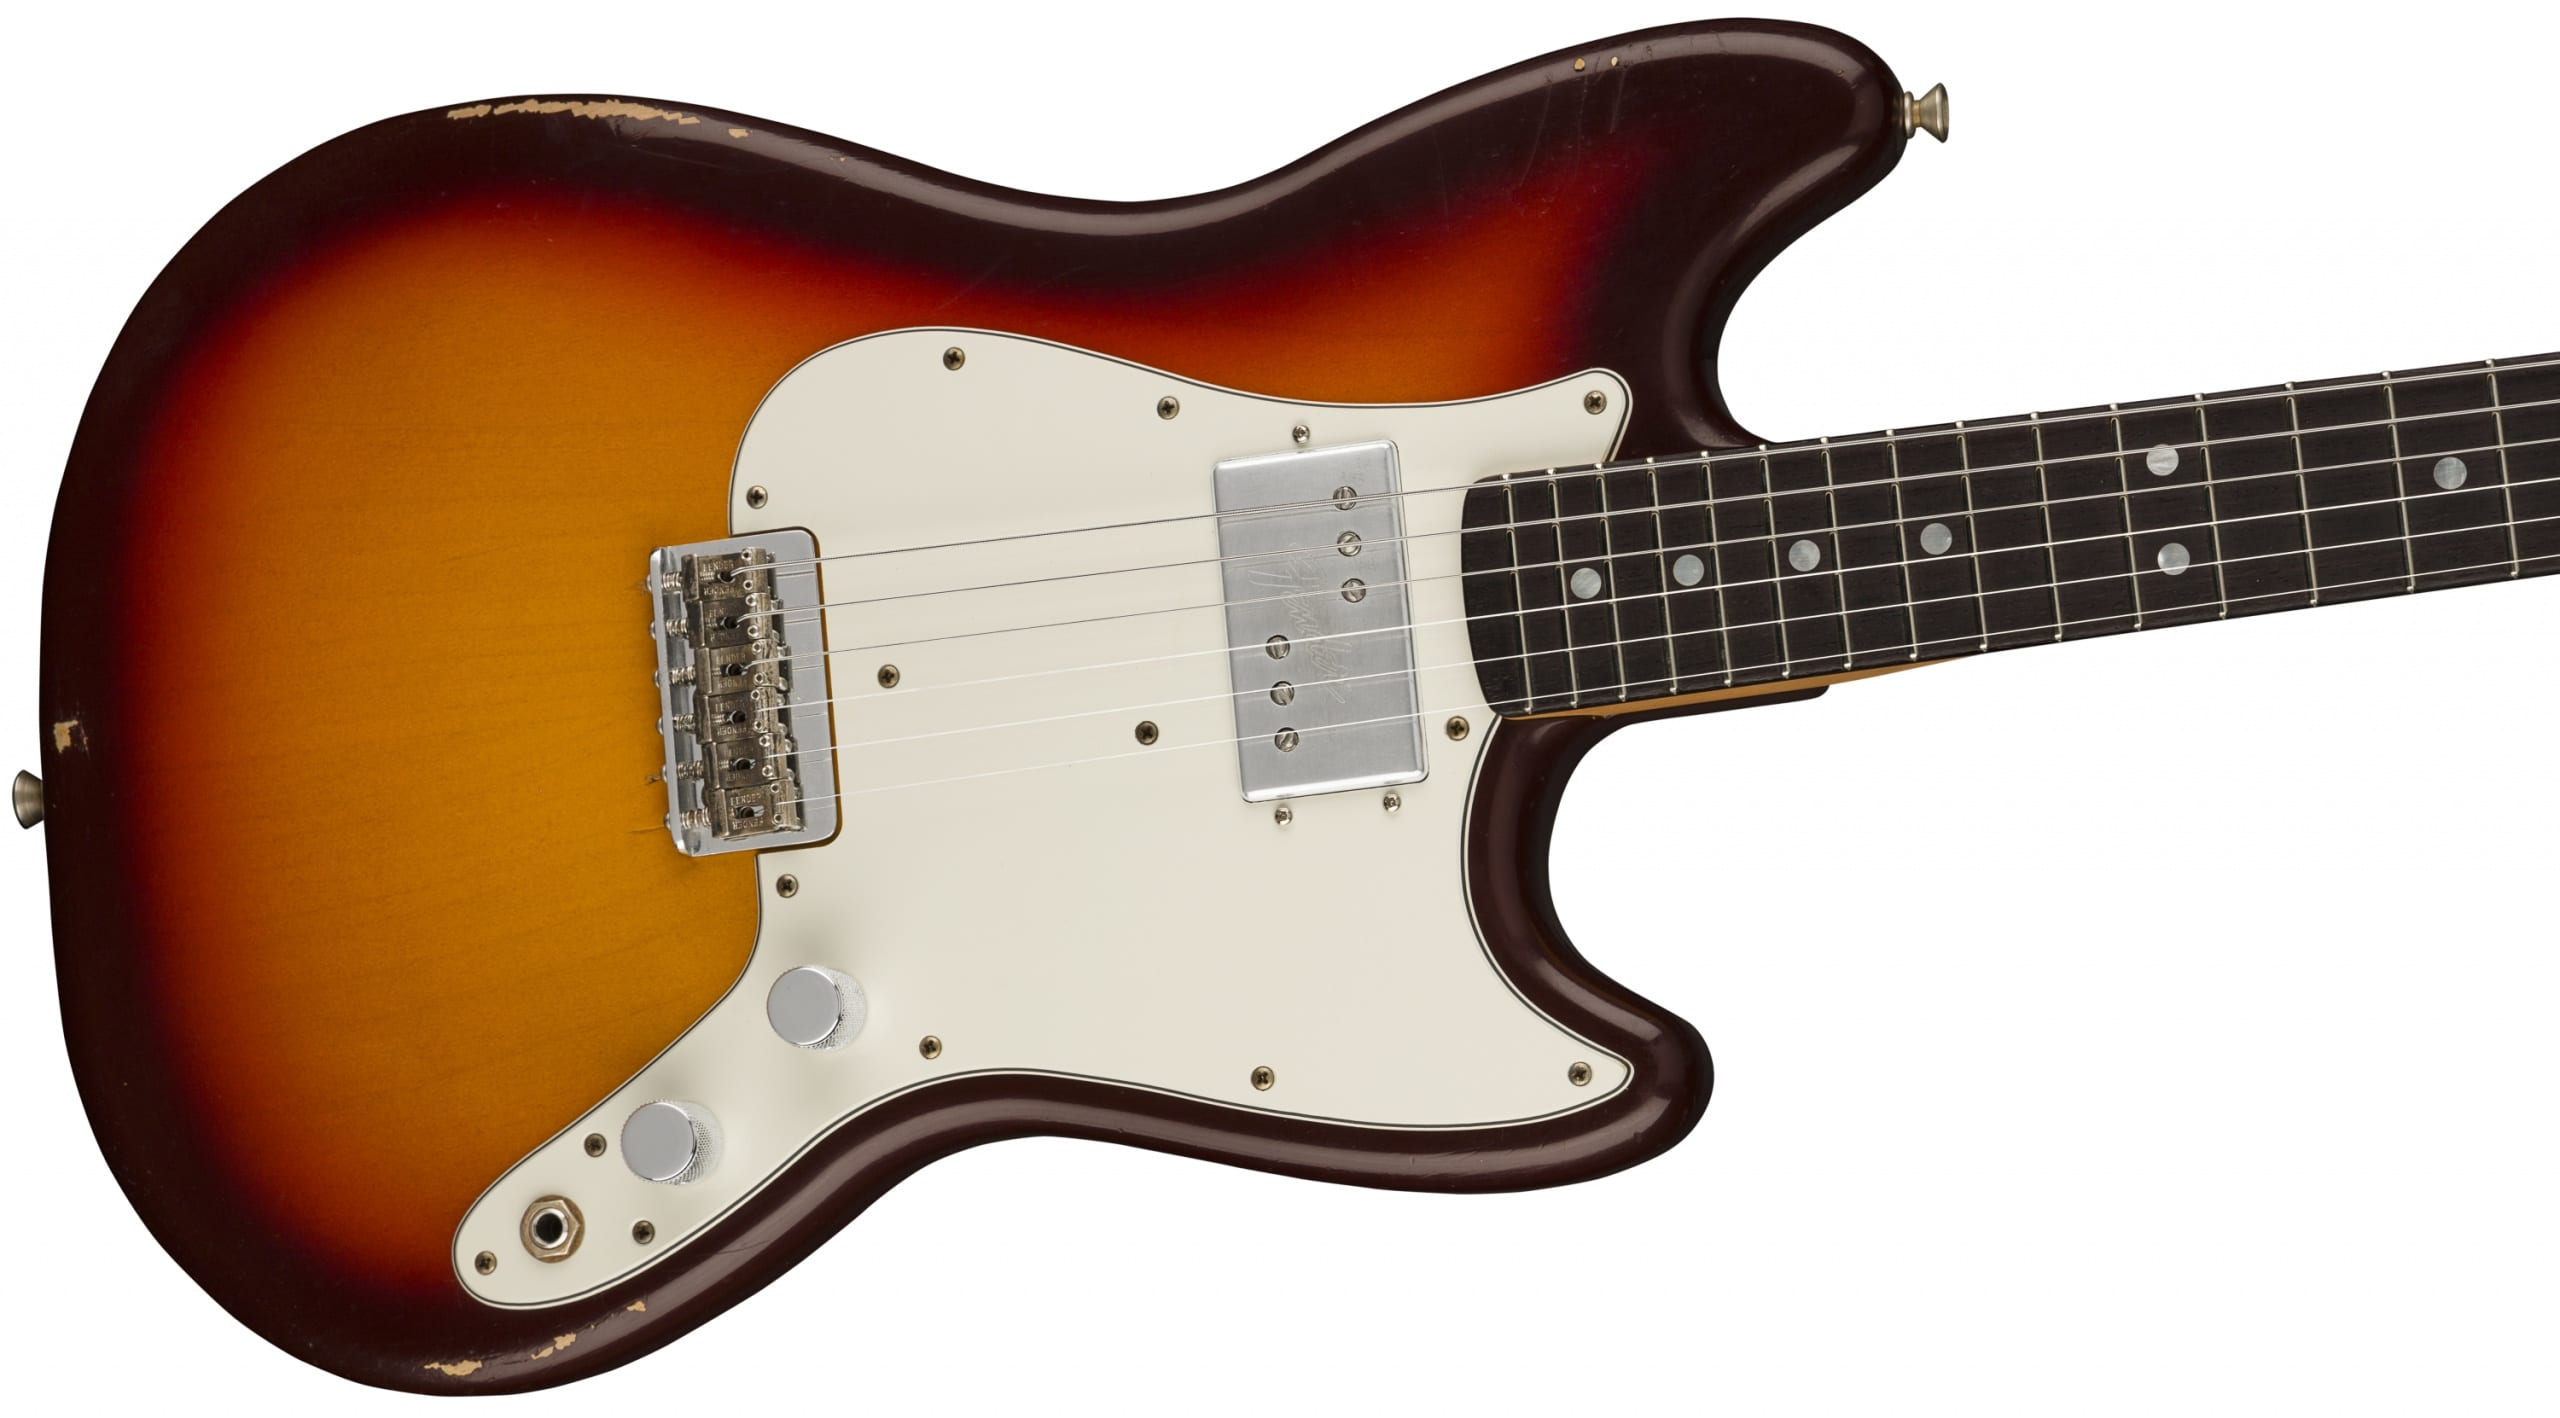 Fender Play Foundation Musicmaster with Wide Range Neck Humbucker by Paul Waller